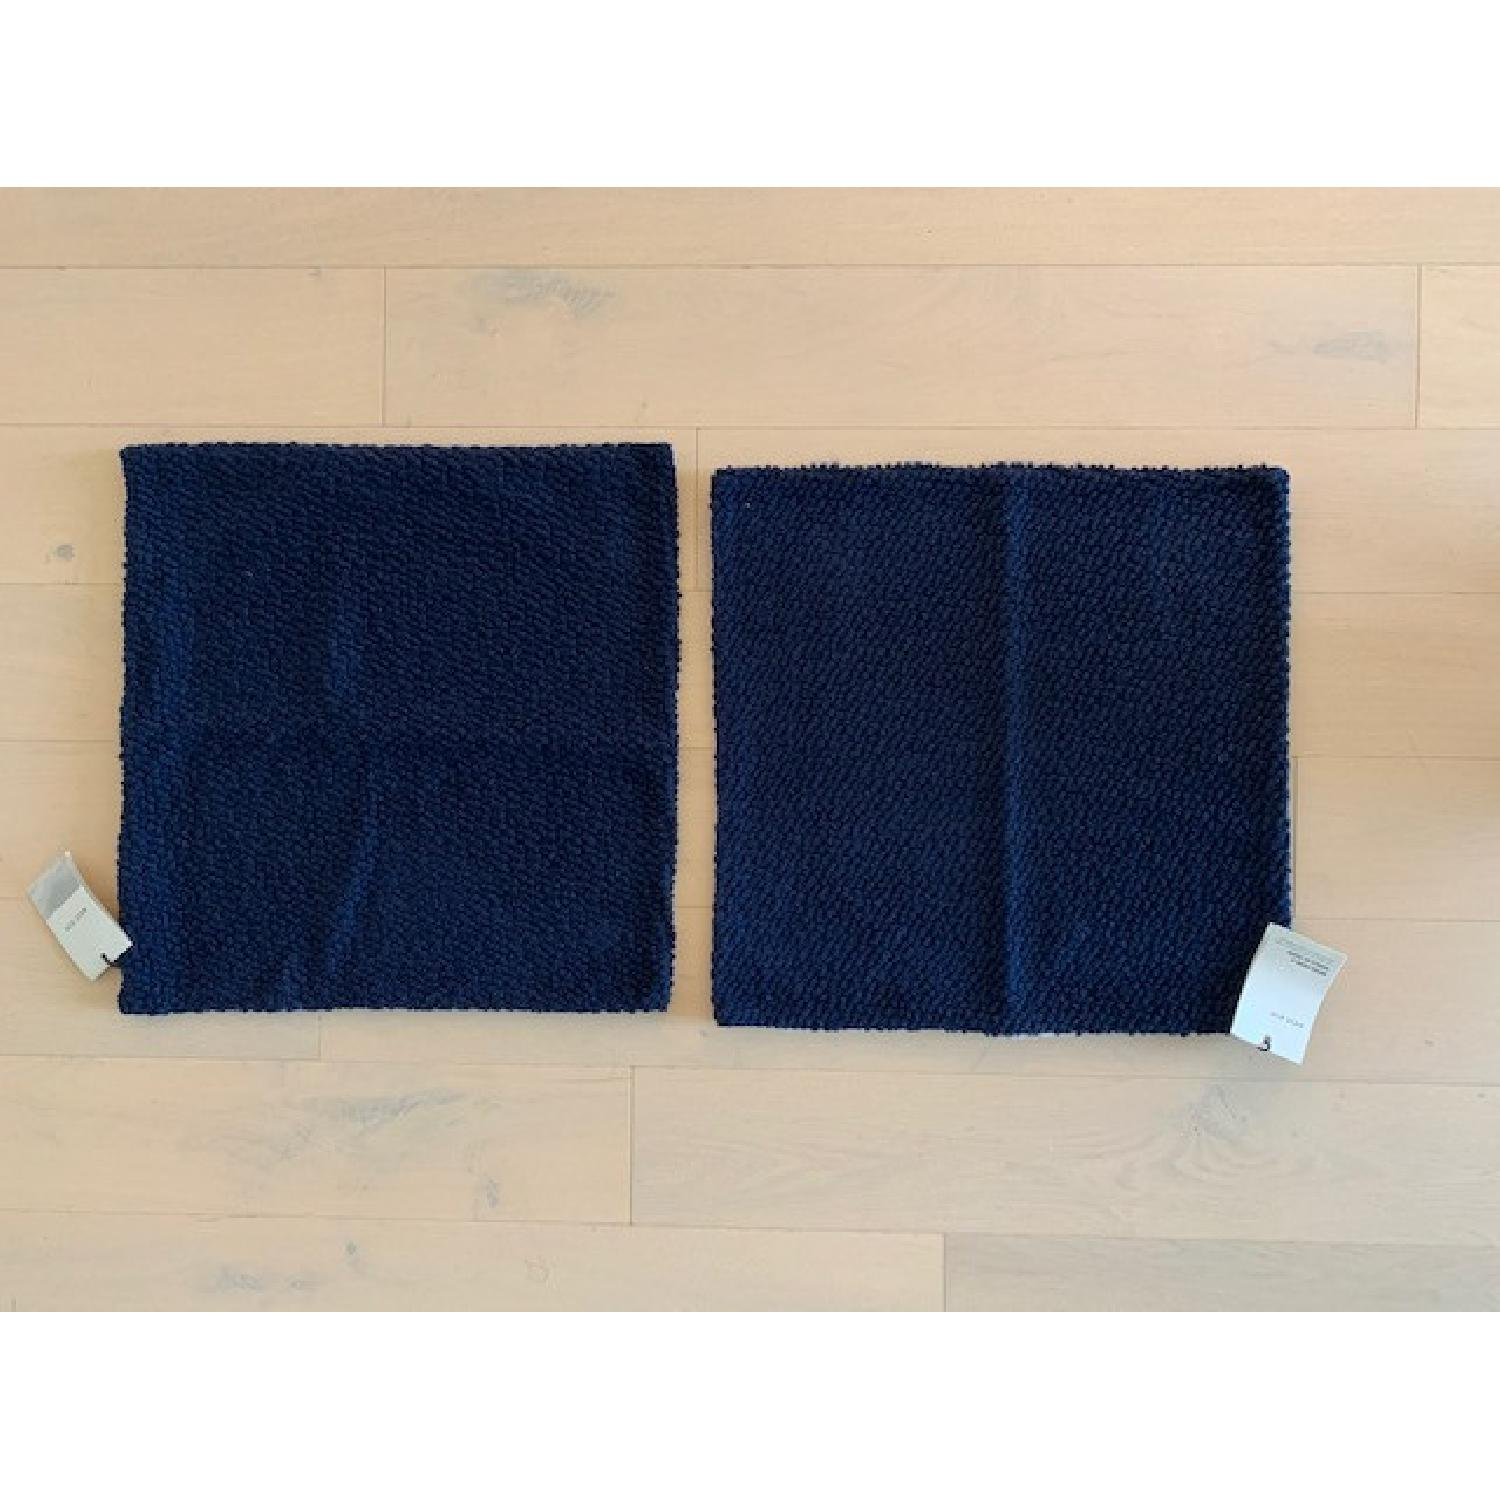 West Elm Boucle Navy Pillow Covers - image-1